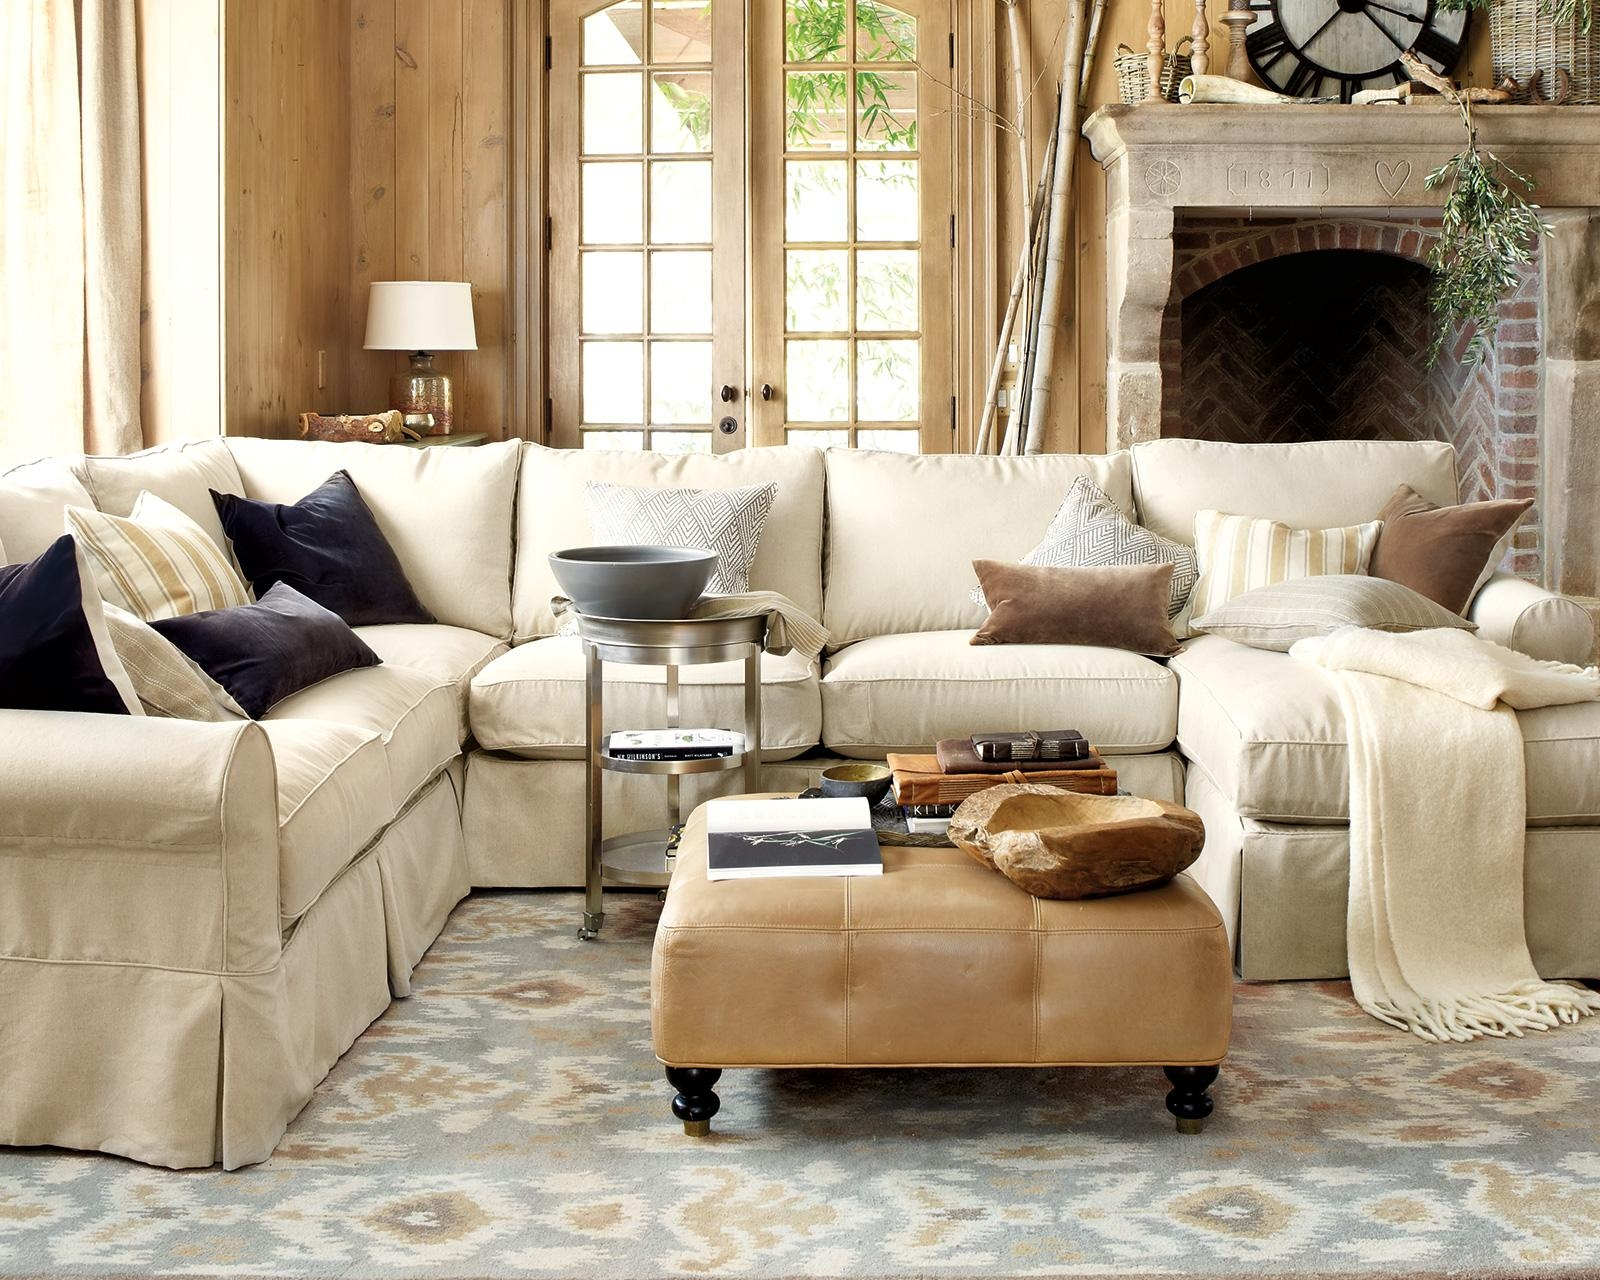 How To Match A Coffee Table To Your Sectional – How To Decorate Intended For Coffee Table For Sectional Sofa (View 2 of 15)